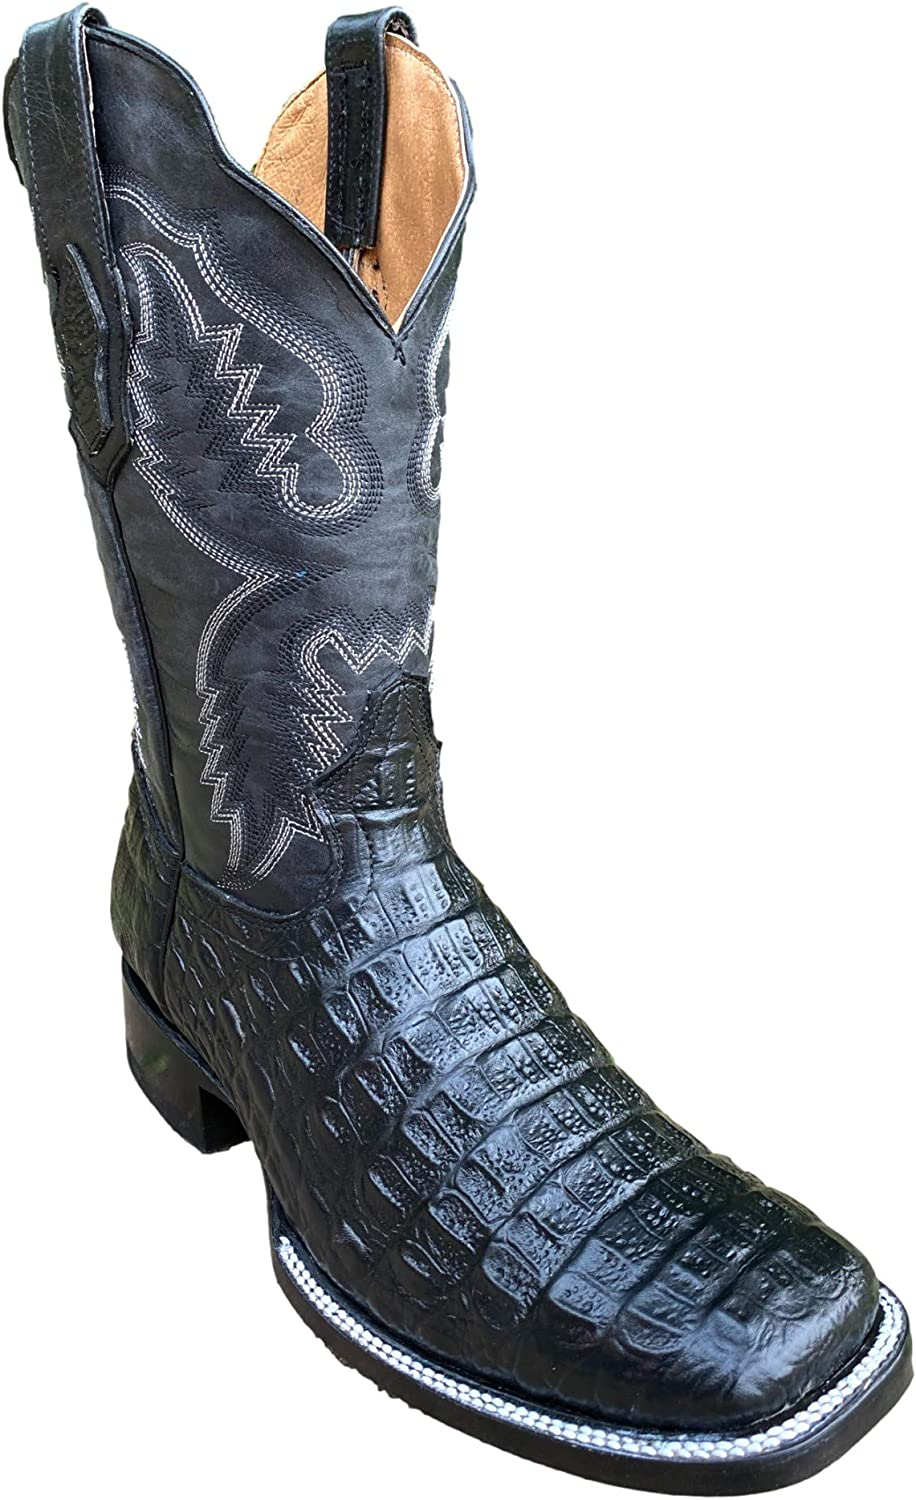 New popularity Square Toe Men's Cowboy Western Boots in Genuine Leather Gadw by Today's only